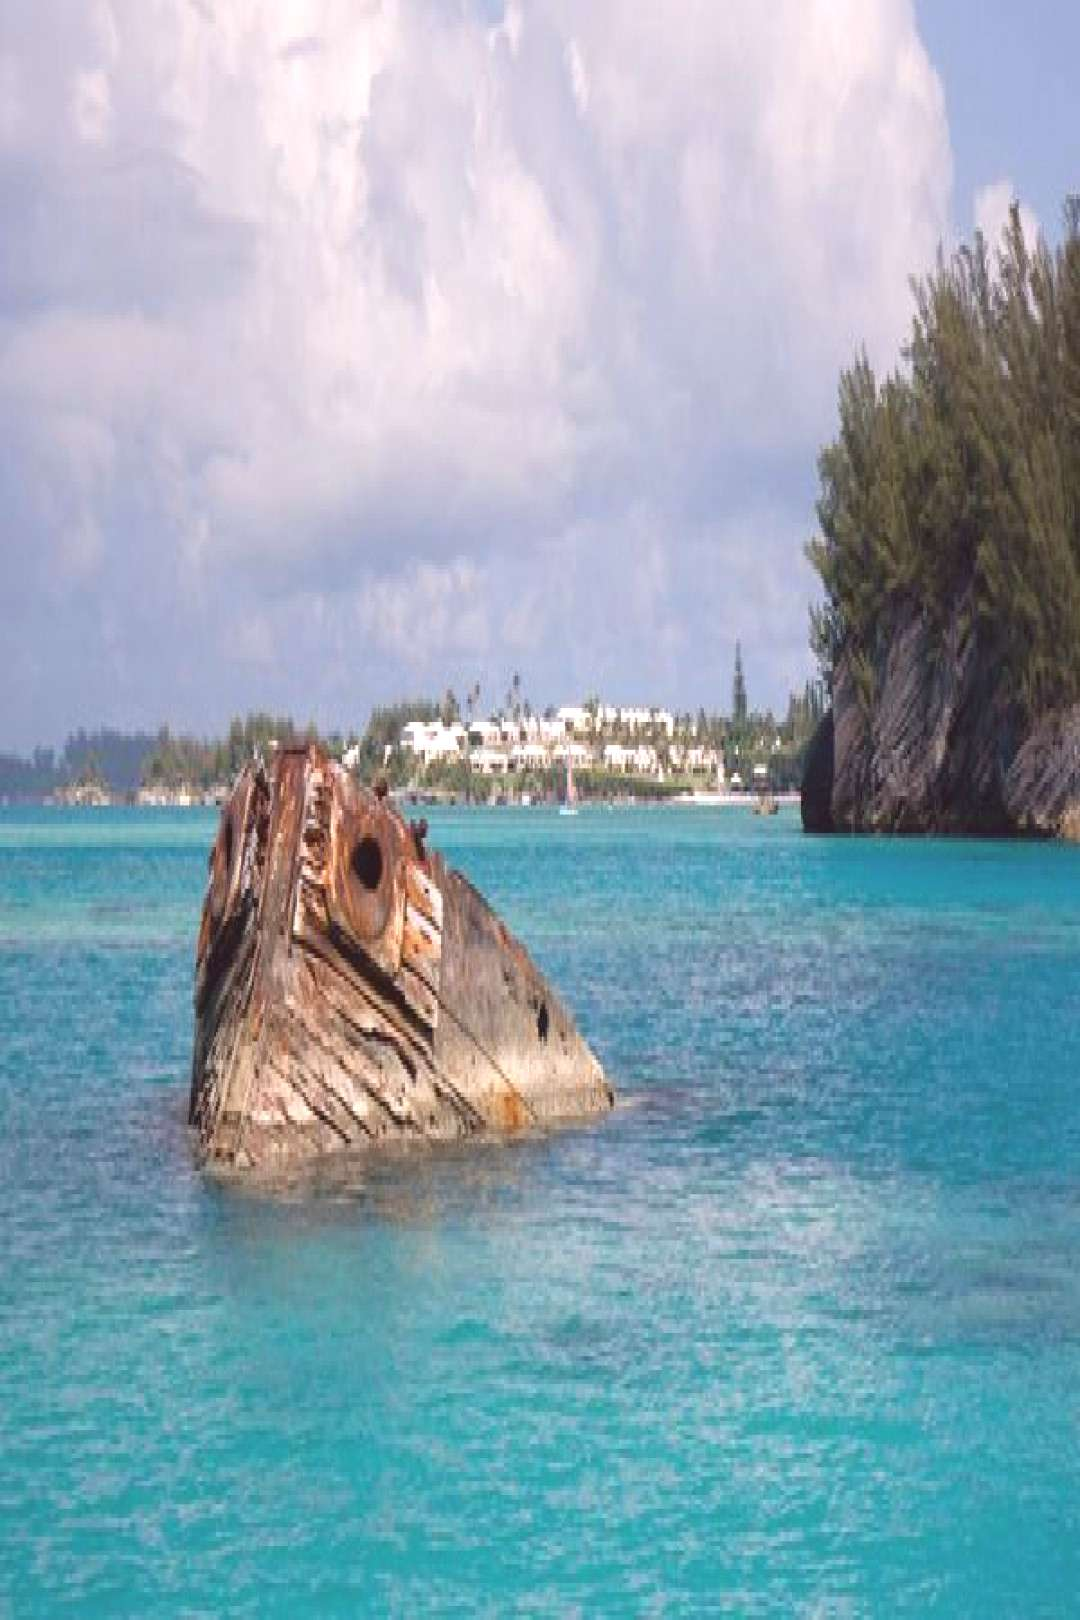 The Bermuda Triangle is infamous for making everything from cargo ships to airplanes disappear. The